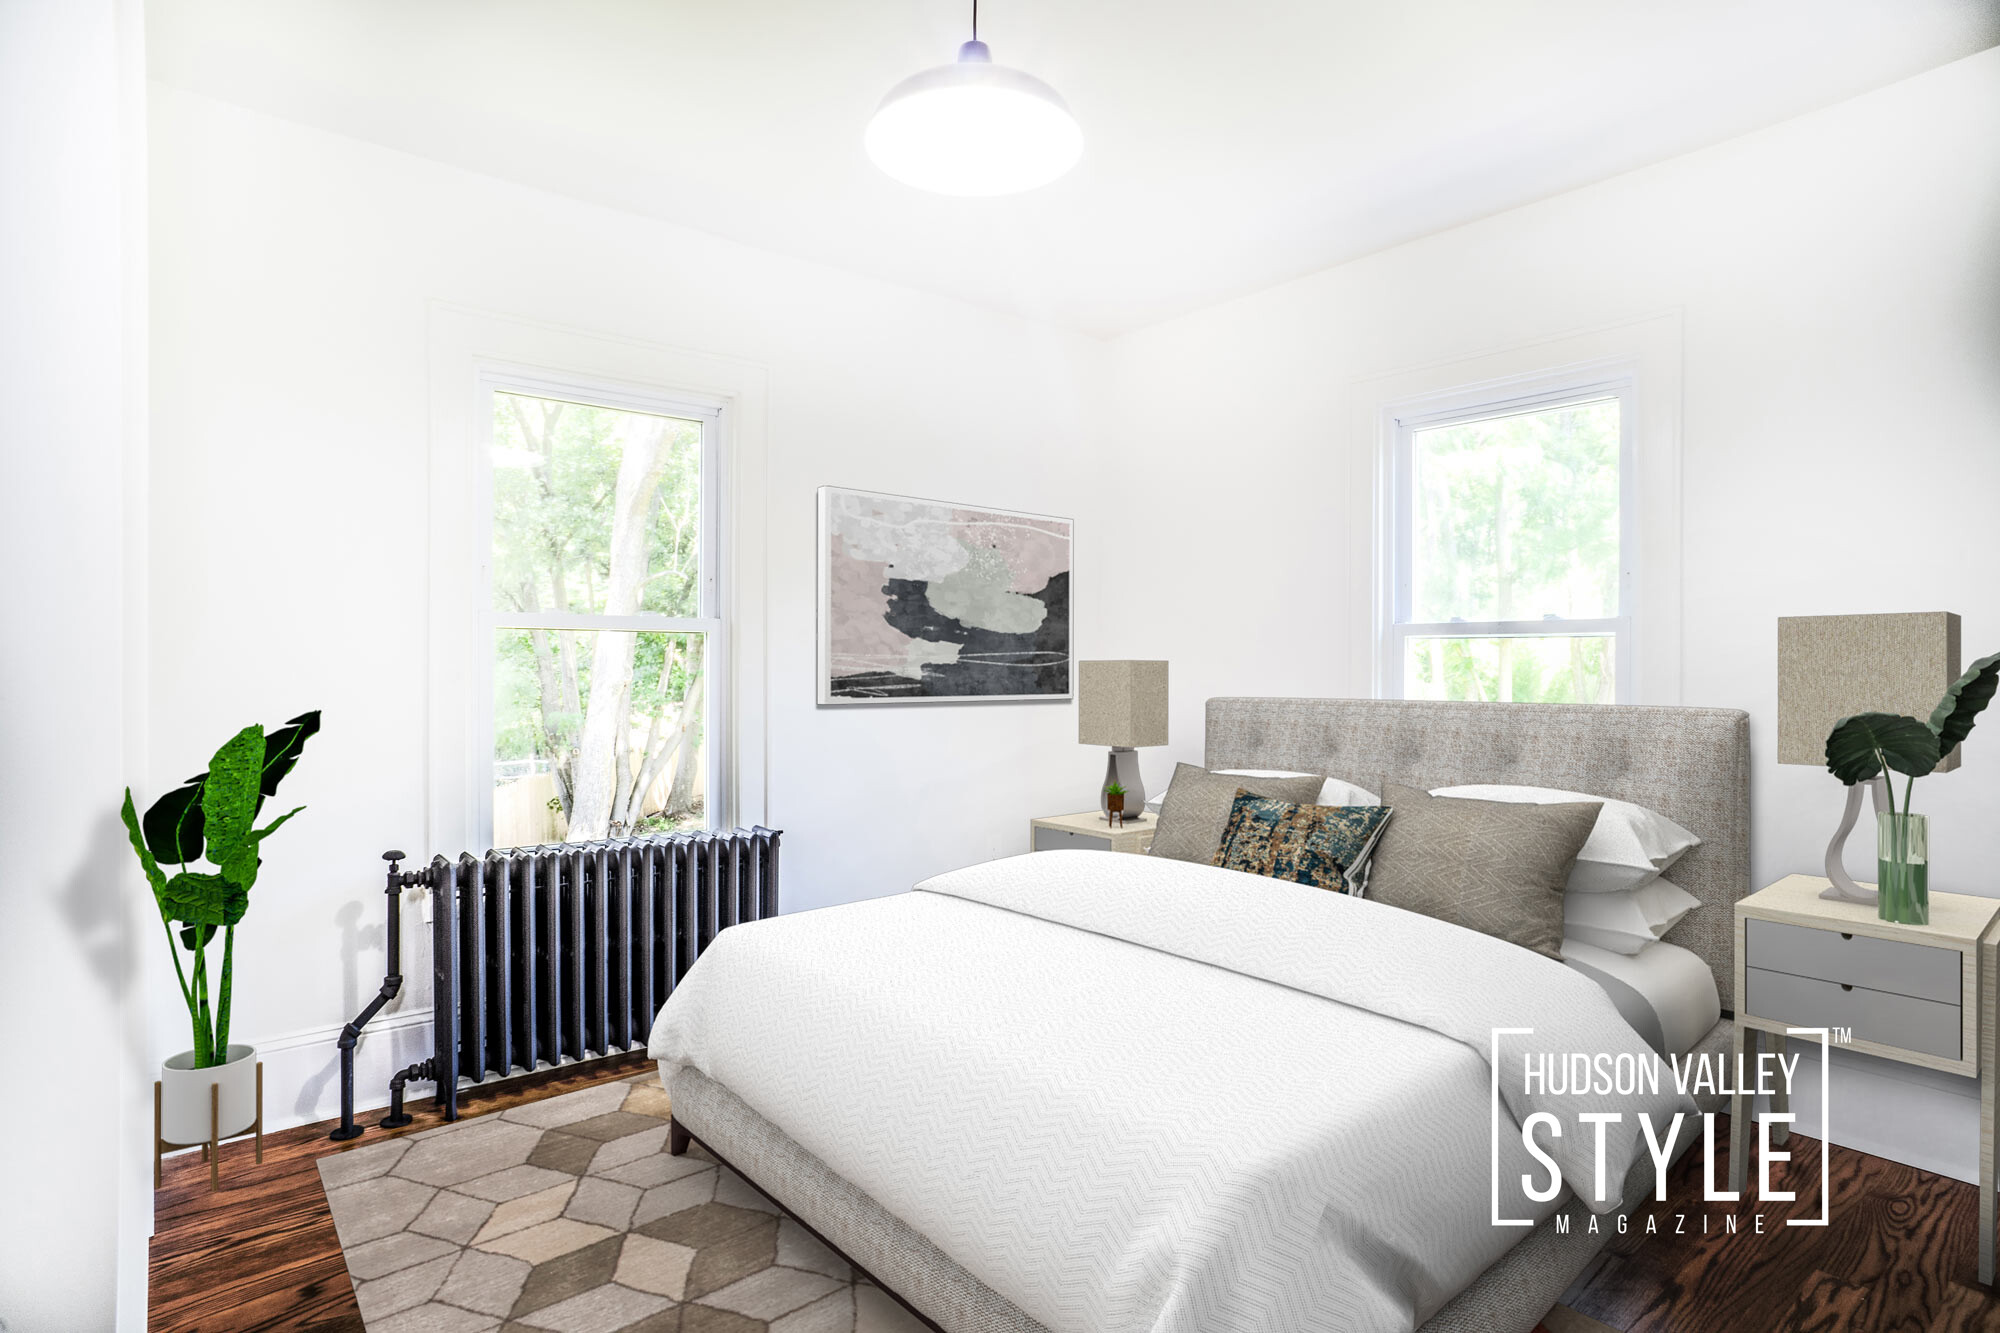 Beautifully Renovated Hudson Valley Farmhouse in Fishkill, NY – Real Estate Photography and Virtual Home Staging by Duncan Avenue Studios